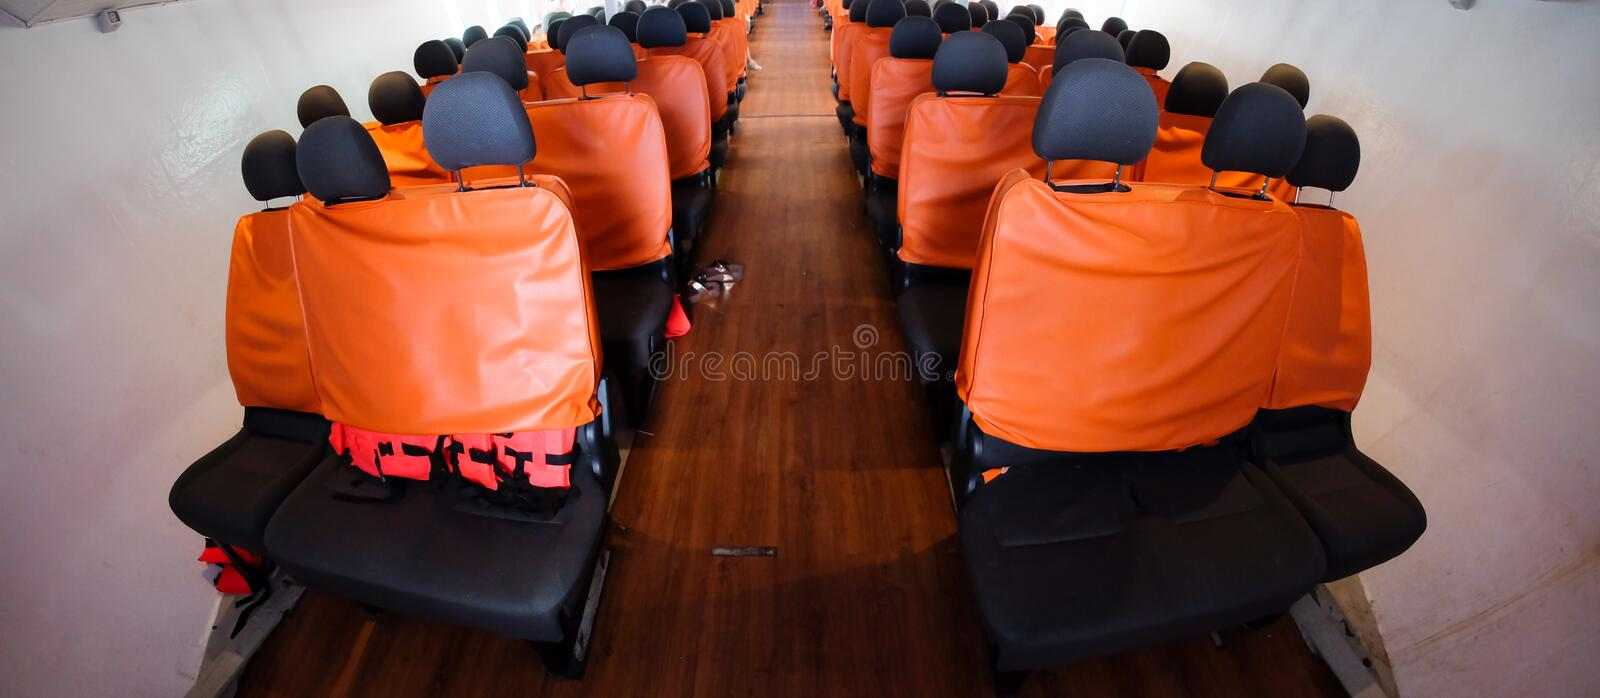 An orange passenger seat in a passenger boat. With life vest stock image